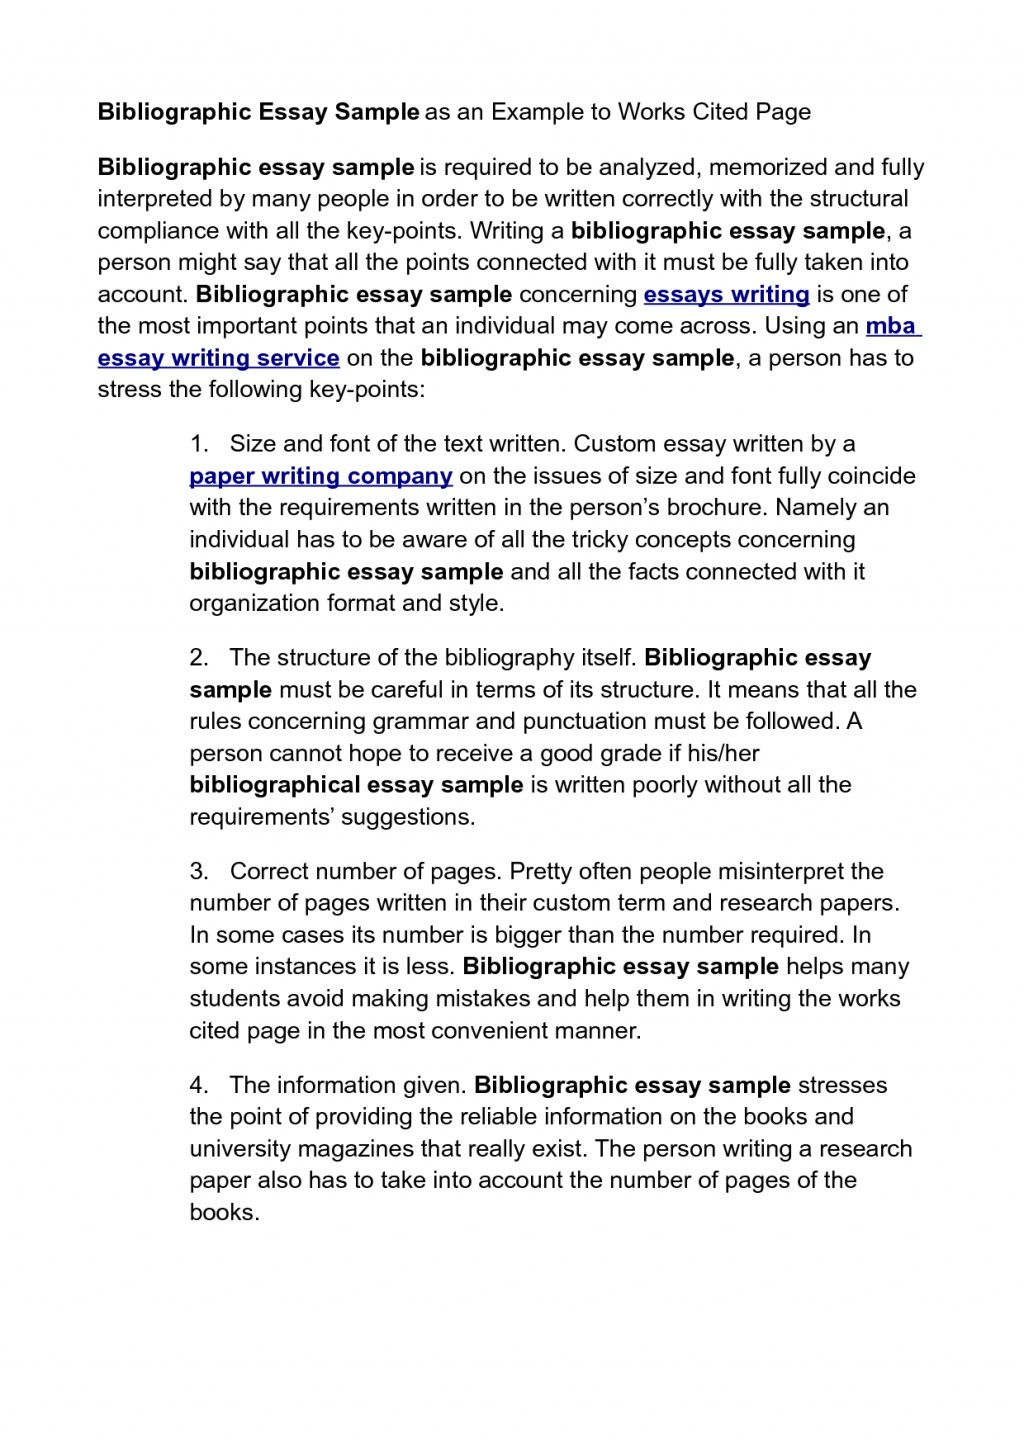 024 How To Cite In An Essay Sample Persuasive With Works Cited Example Of Mla L Awful A Paper Two First Authors From Website Apa Evidence Examples Large